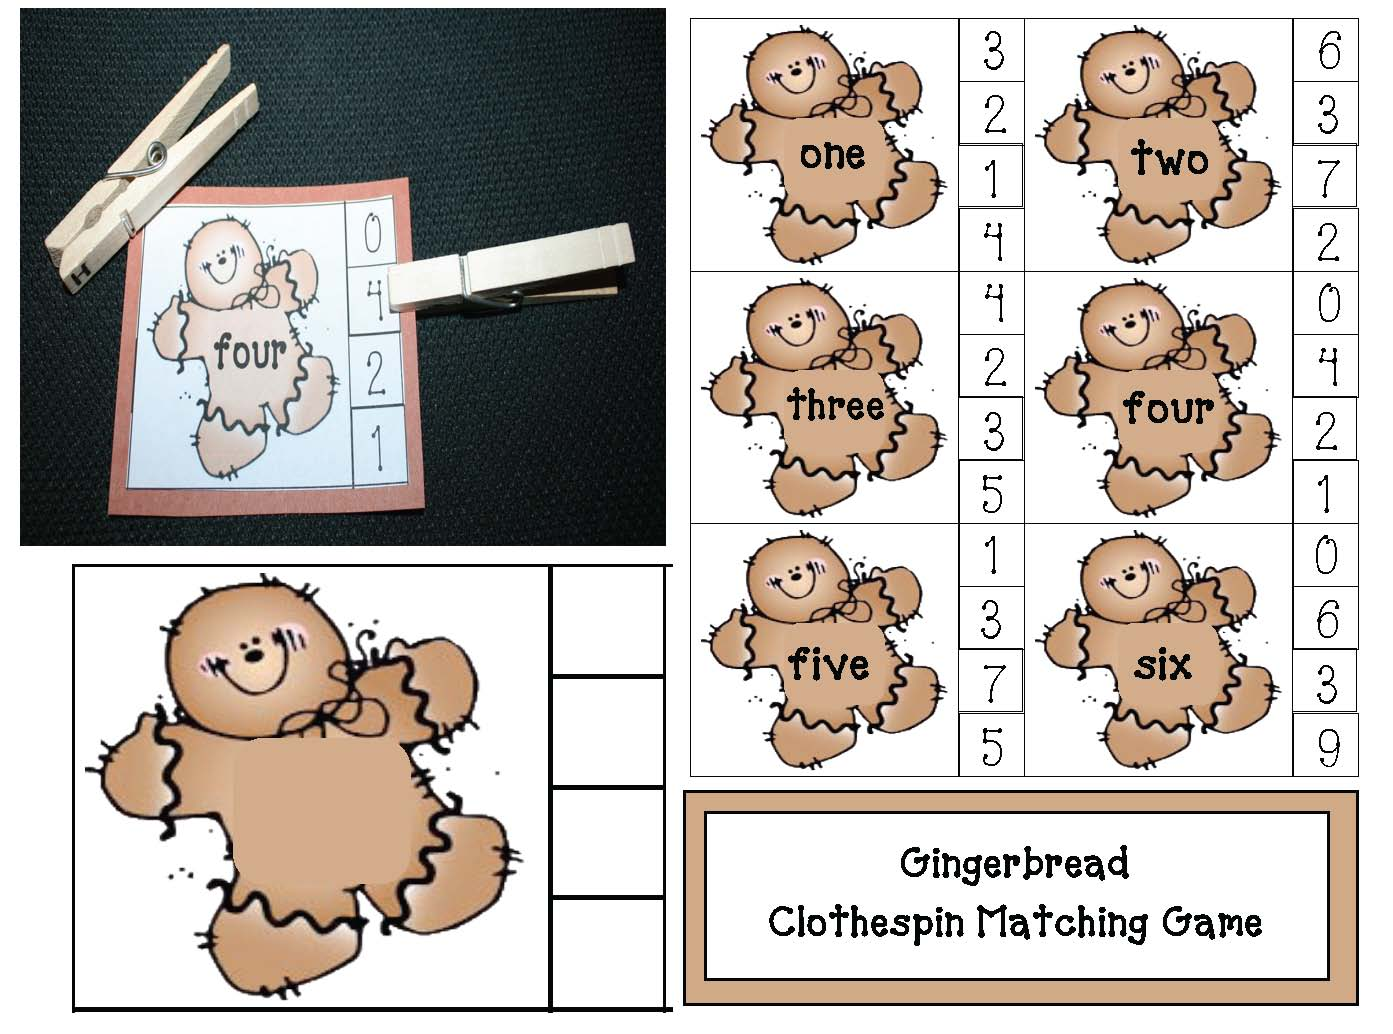 gingerbread activities, gingerbread lessons, gingerbread puzzles. gingerbread crafts, common core gingerbread, shape activities, alphabet activities, gingerbread arts and crafts, skip counting activities, counting backwards activities, greater and less than activities, sorting odd and even, activities for counting backwards from 10 to 0 and 20 to 0,